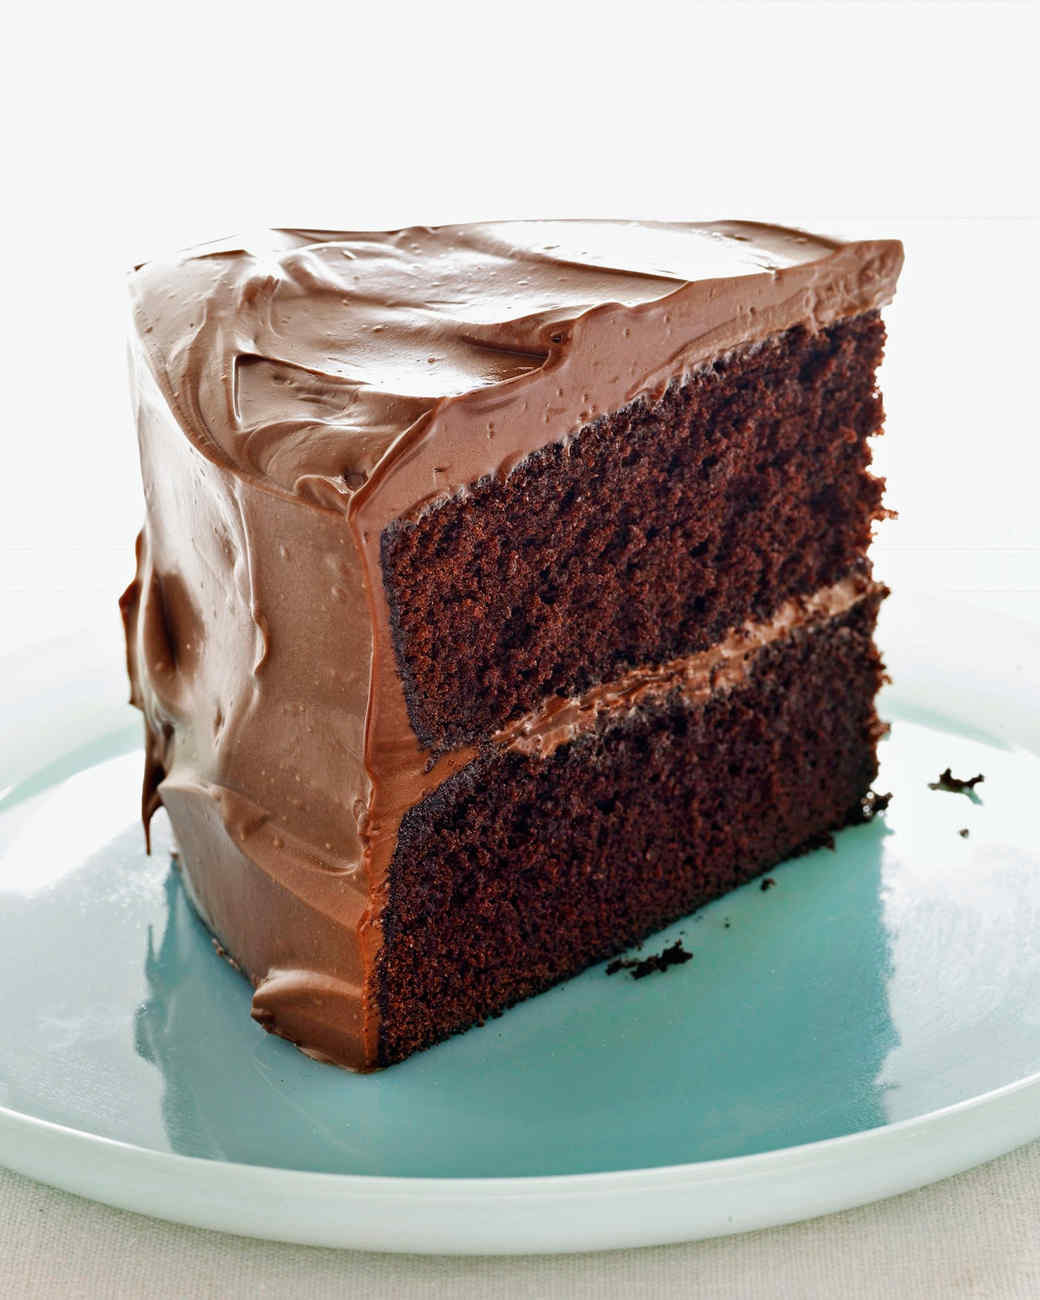 Cake Frosting Recipe  Devil s Food Cake with Milk Chocolate Frosting